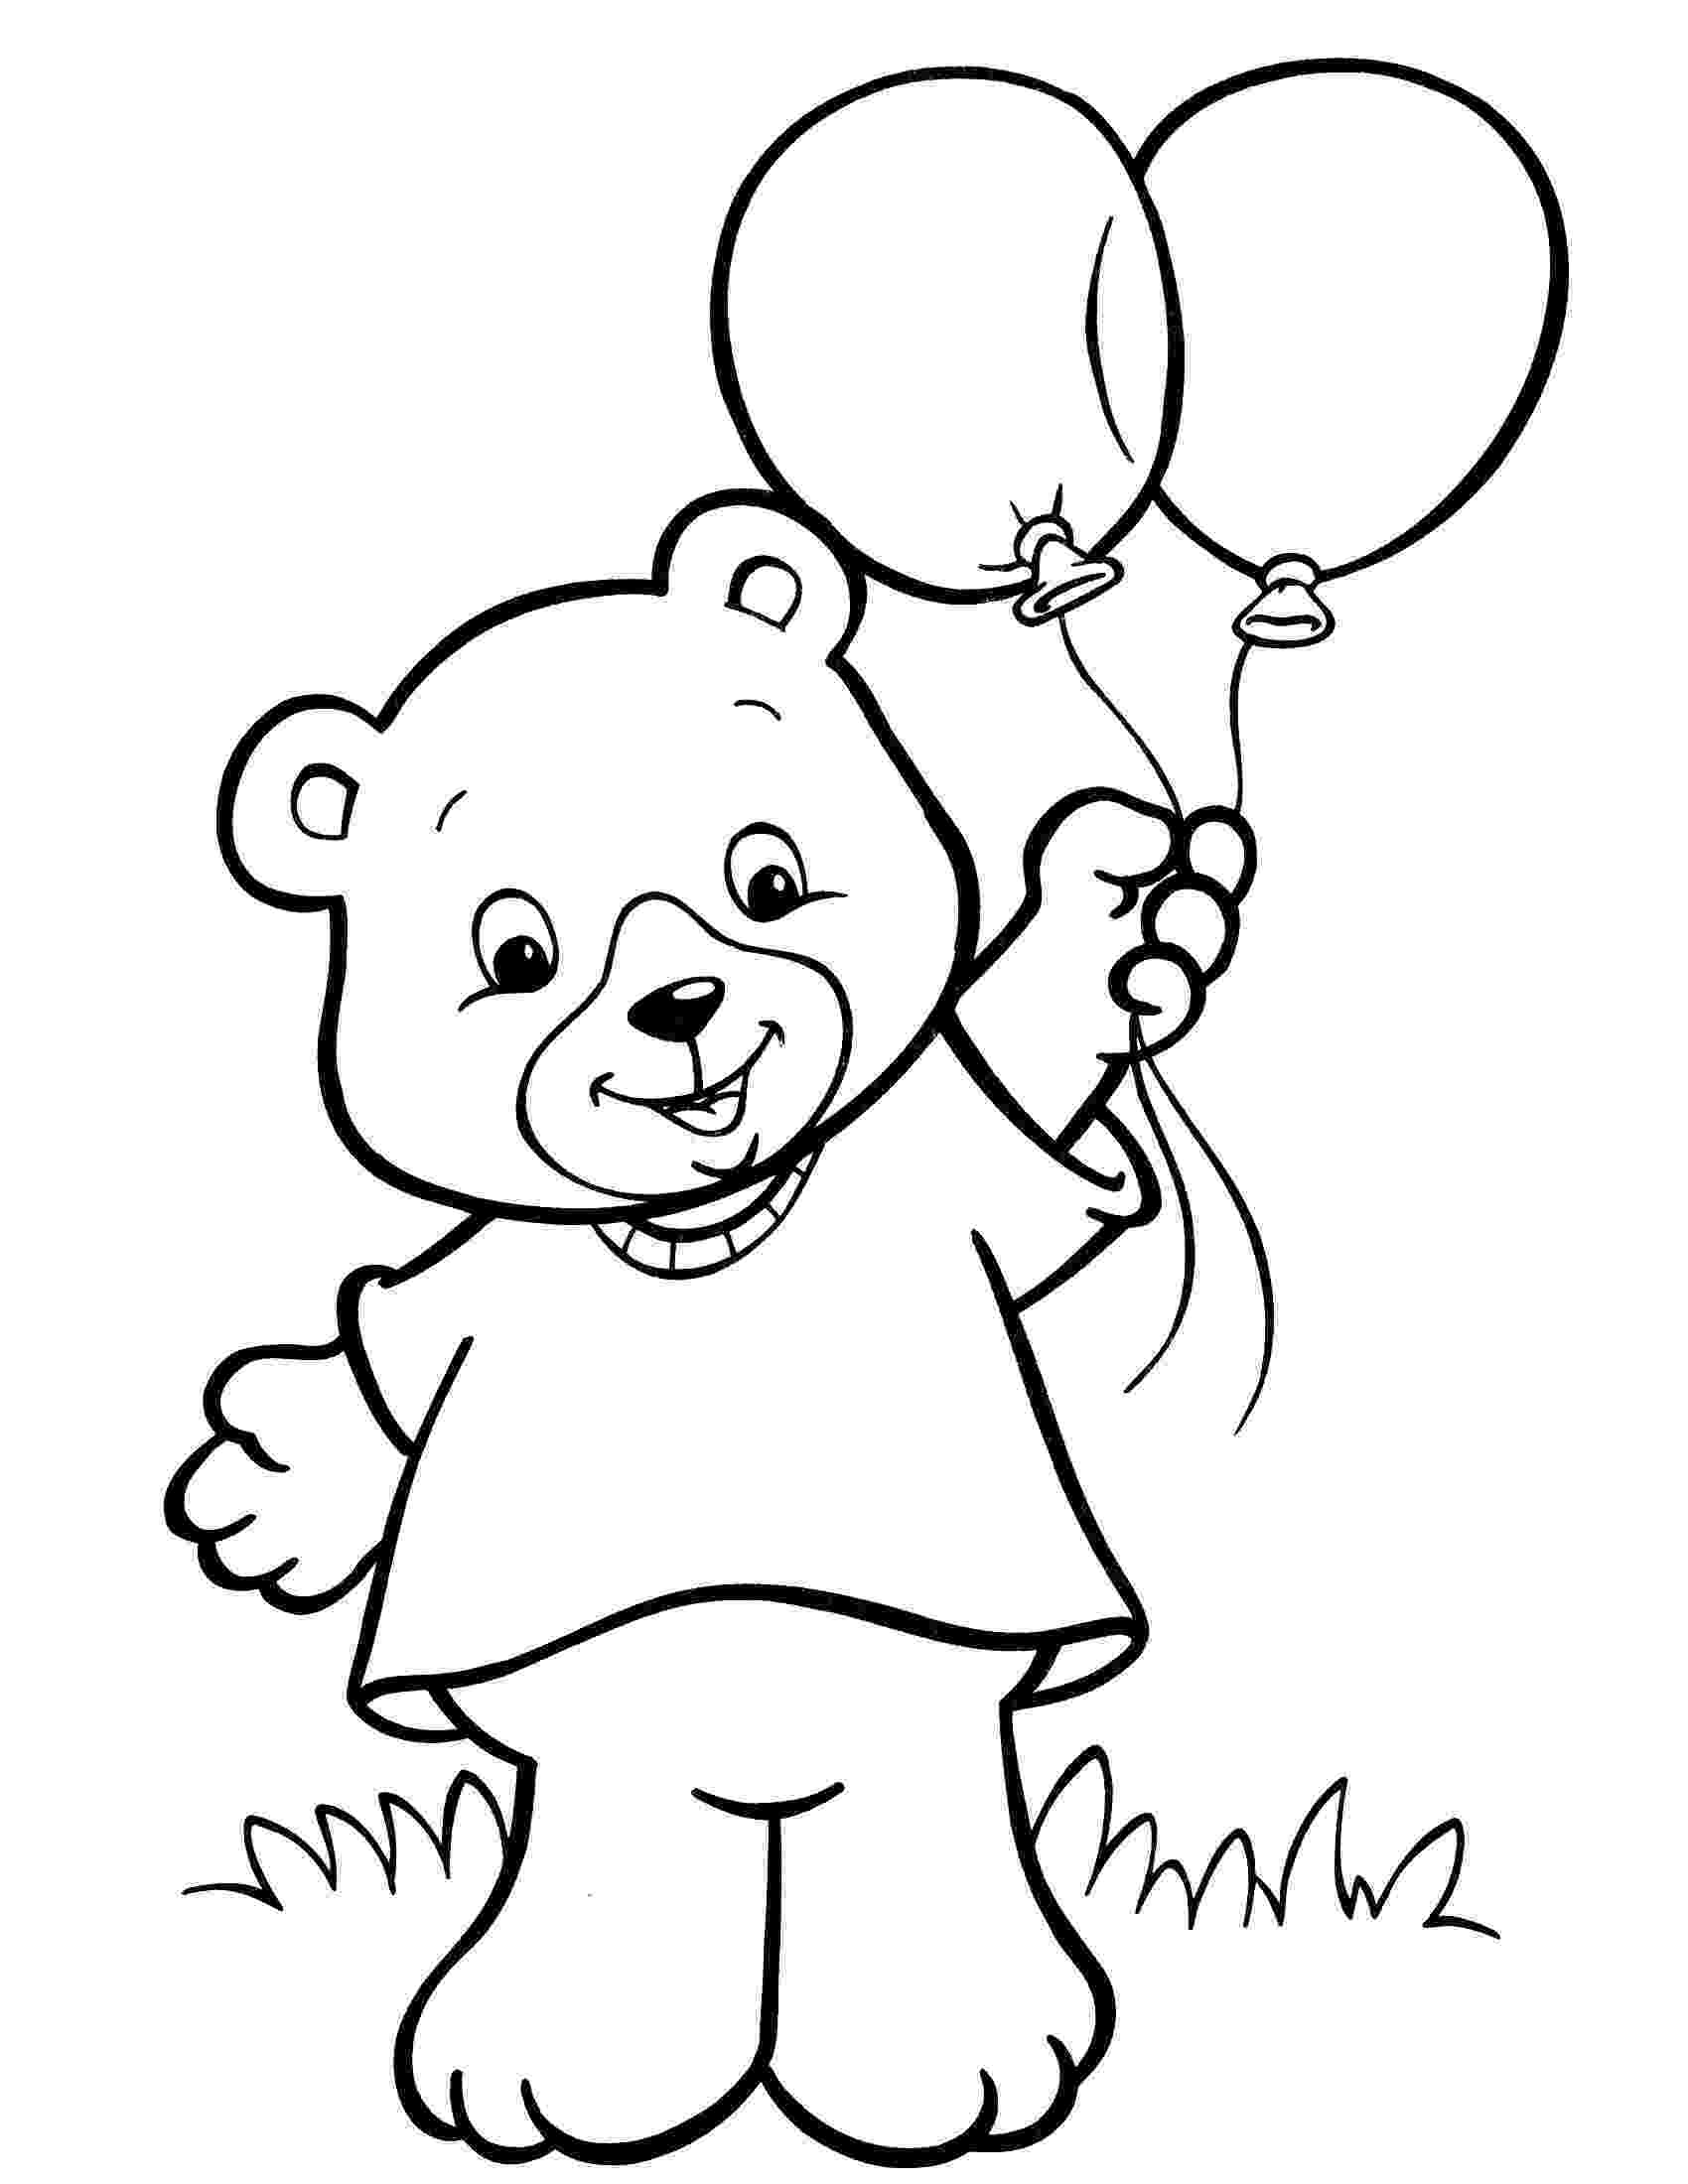 colouring pages for two year olds coloring pages for 3 year olds free download on clipartmag year pages colouring two olds for